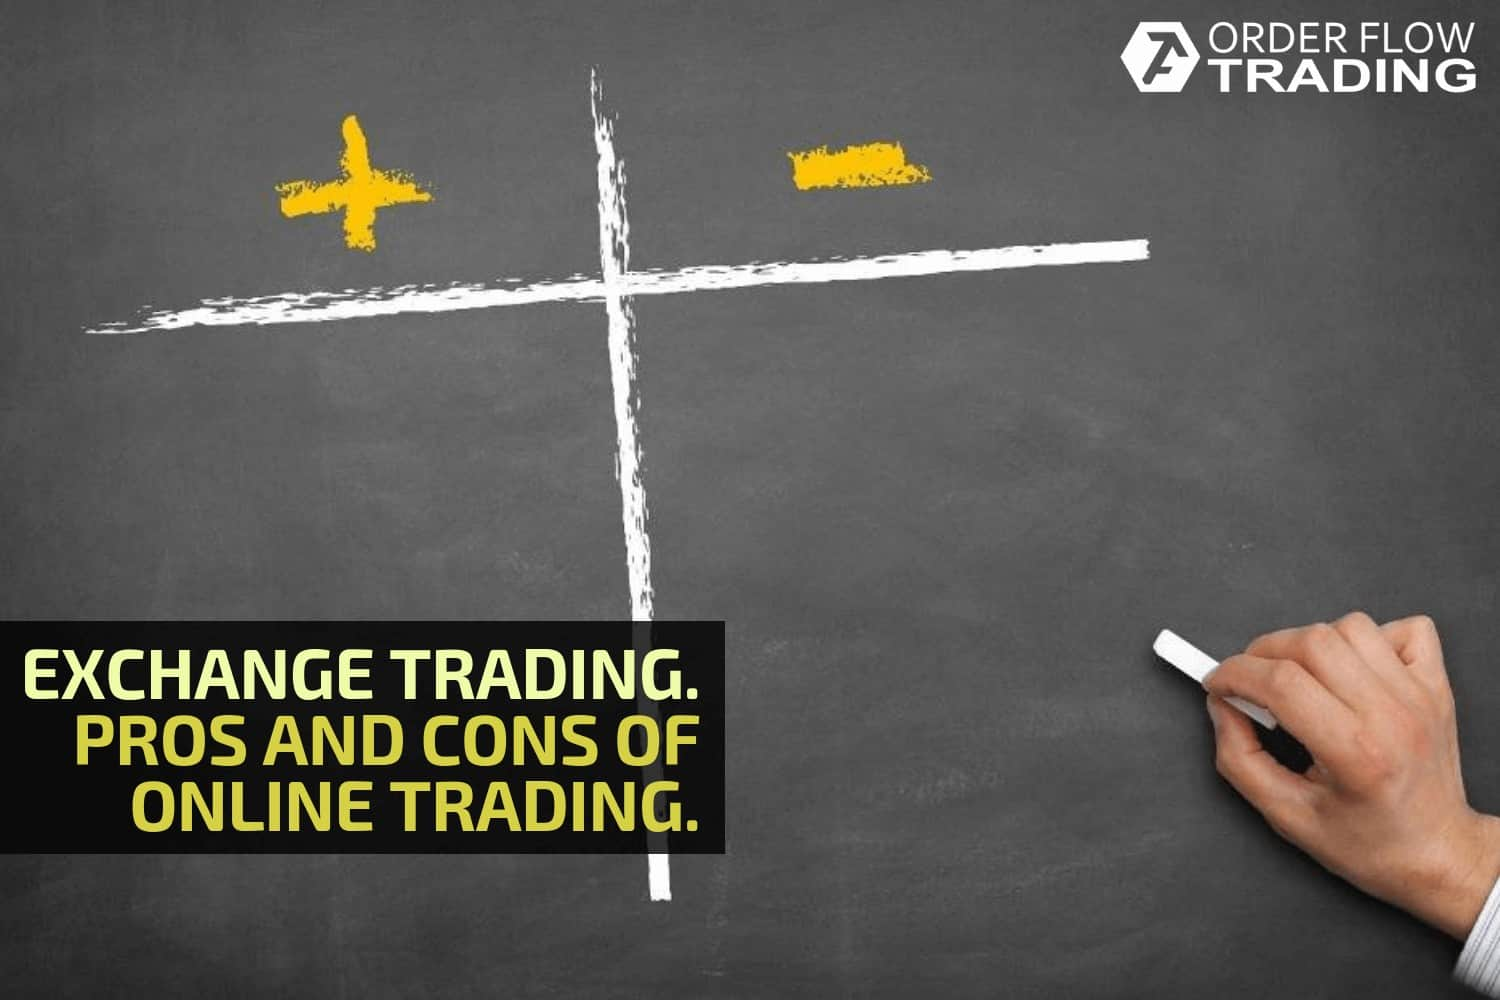 Exchange trading. Pros and cons of online trading.